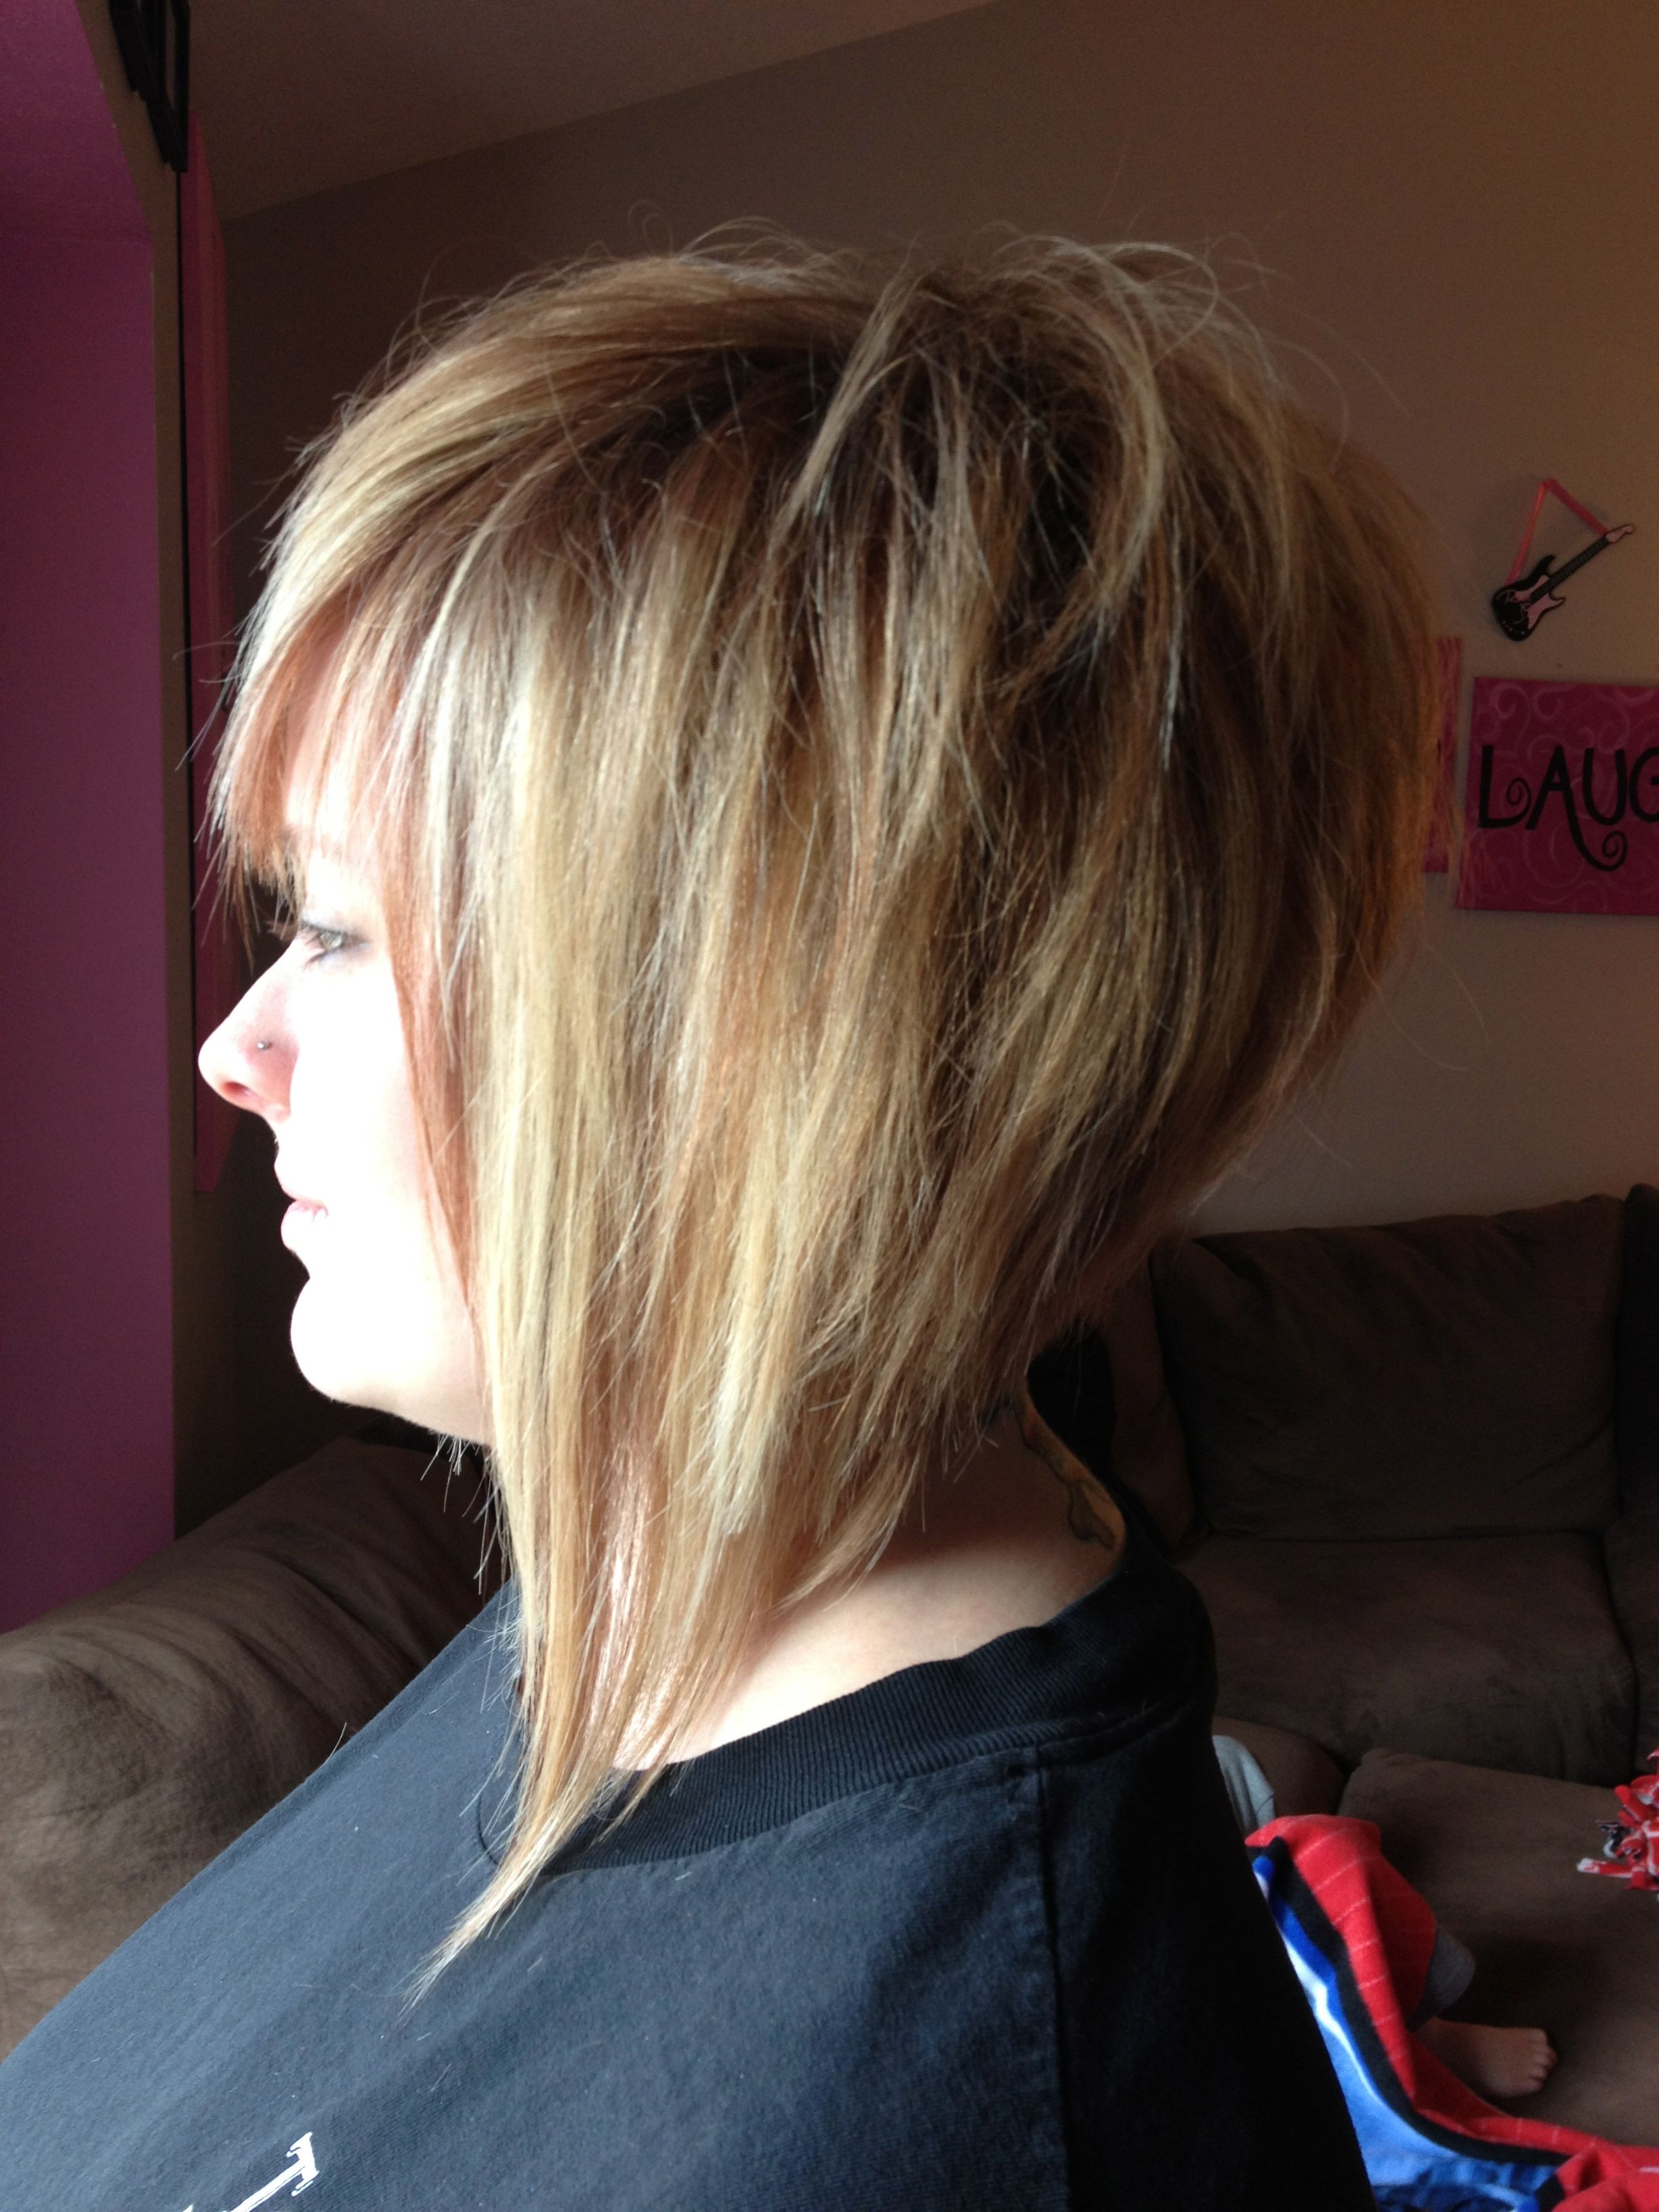 Cute hairlove how short and funky this is it would look great